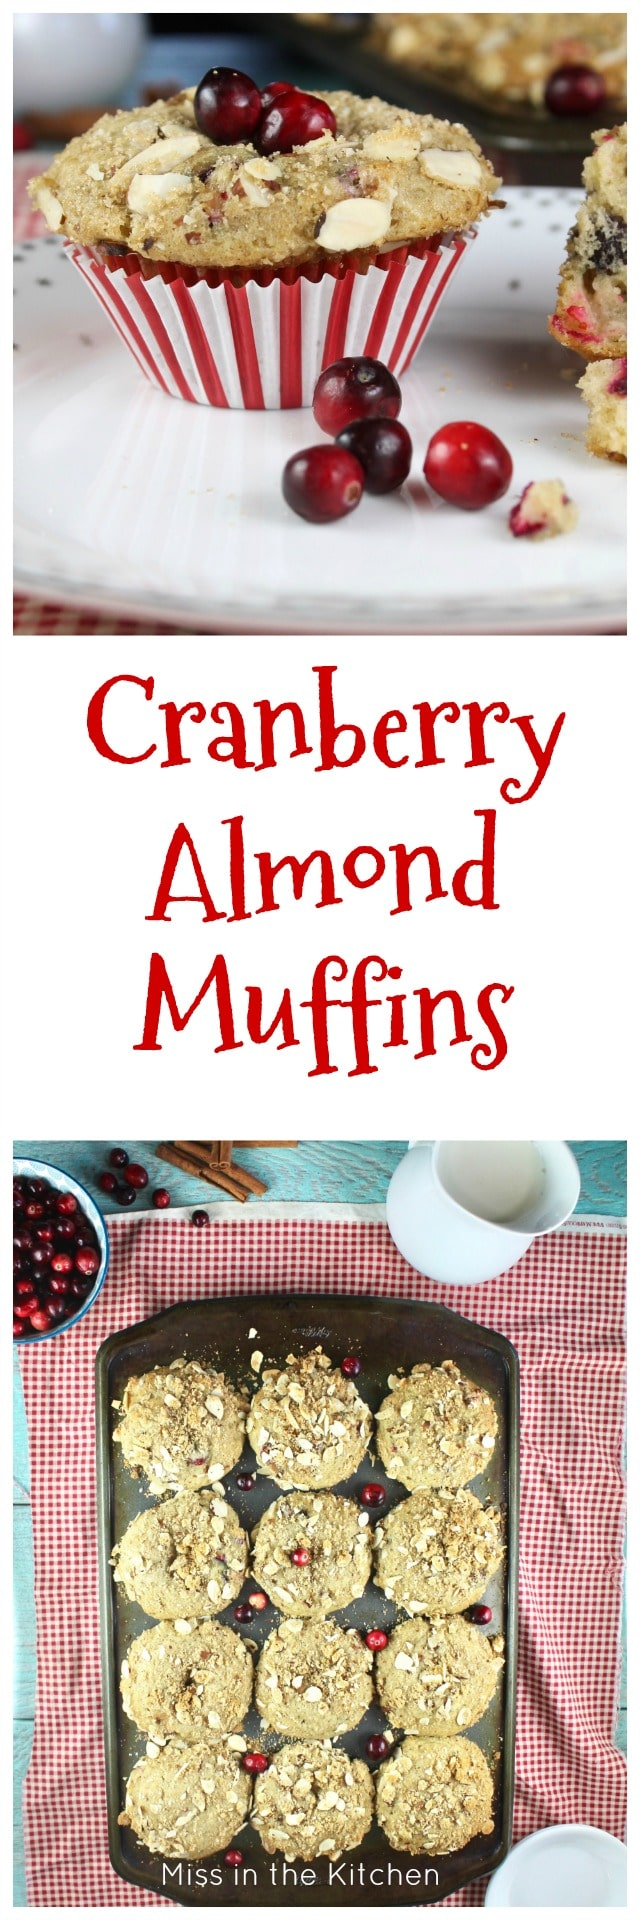 Cranberry Almond Muffins Recipe perfect for holiday mornings! From MissintheKitchen.com